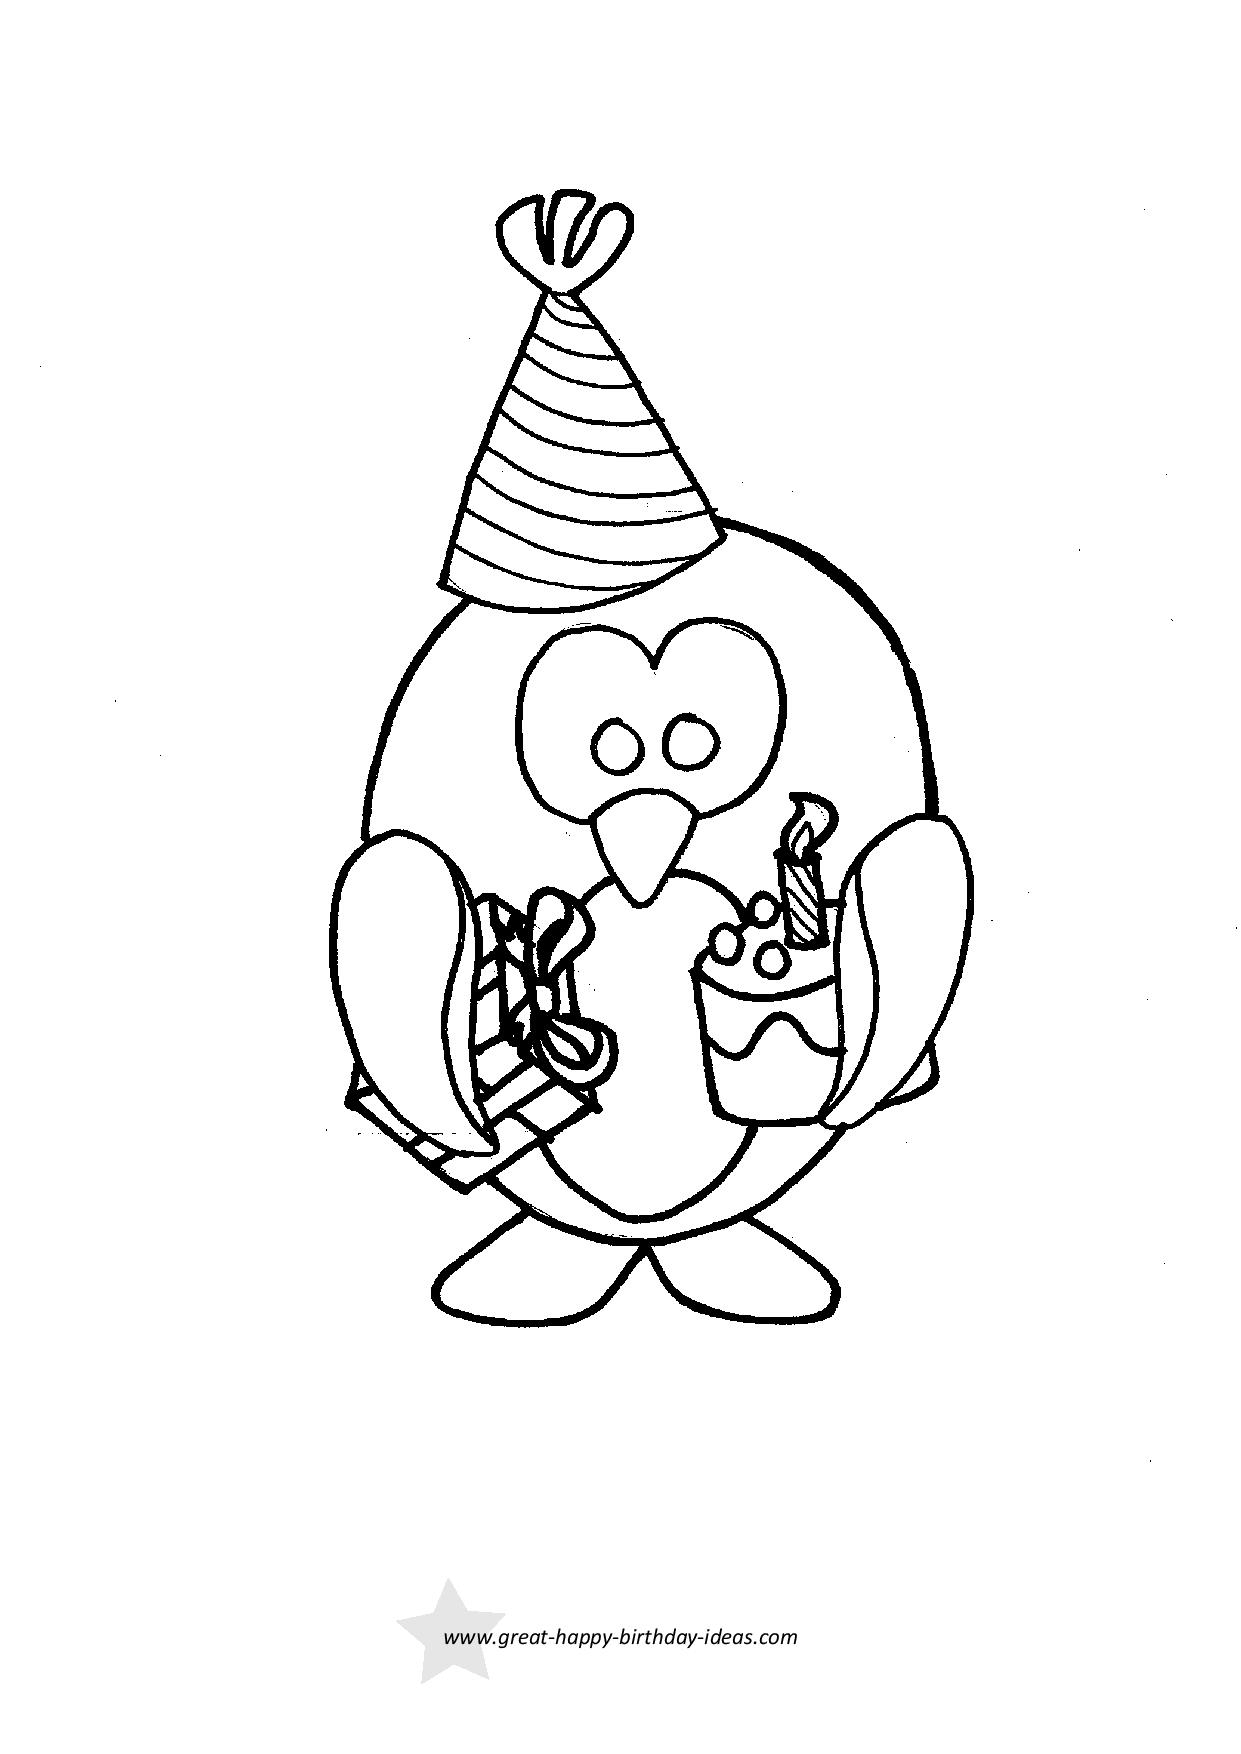 Coloring Pages For Birthday Printable Birthday Coloring Pages